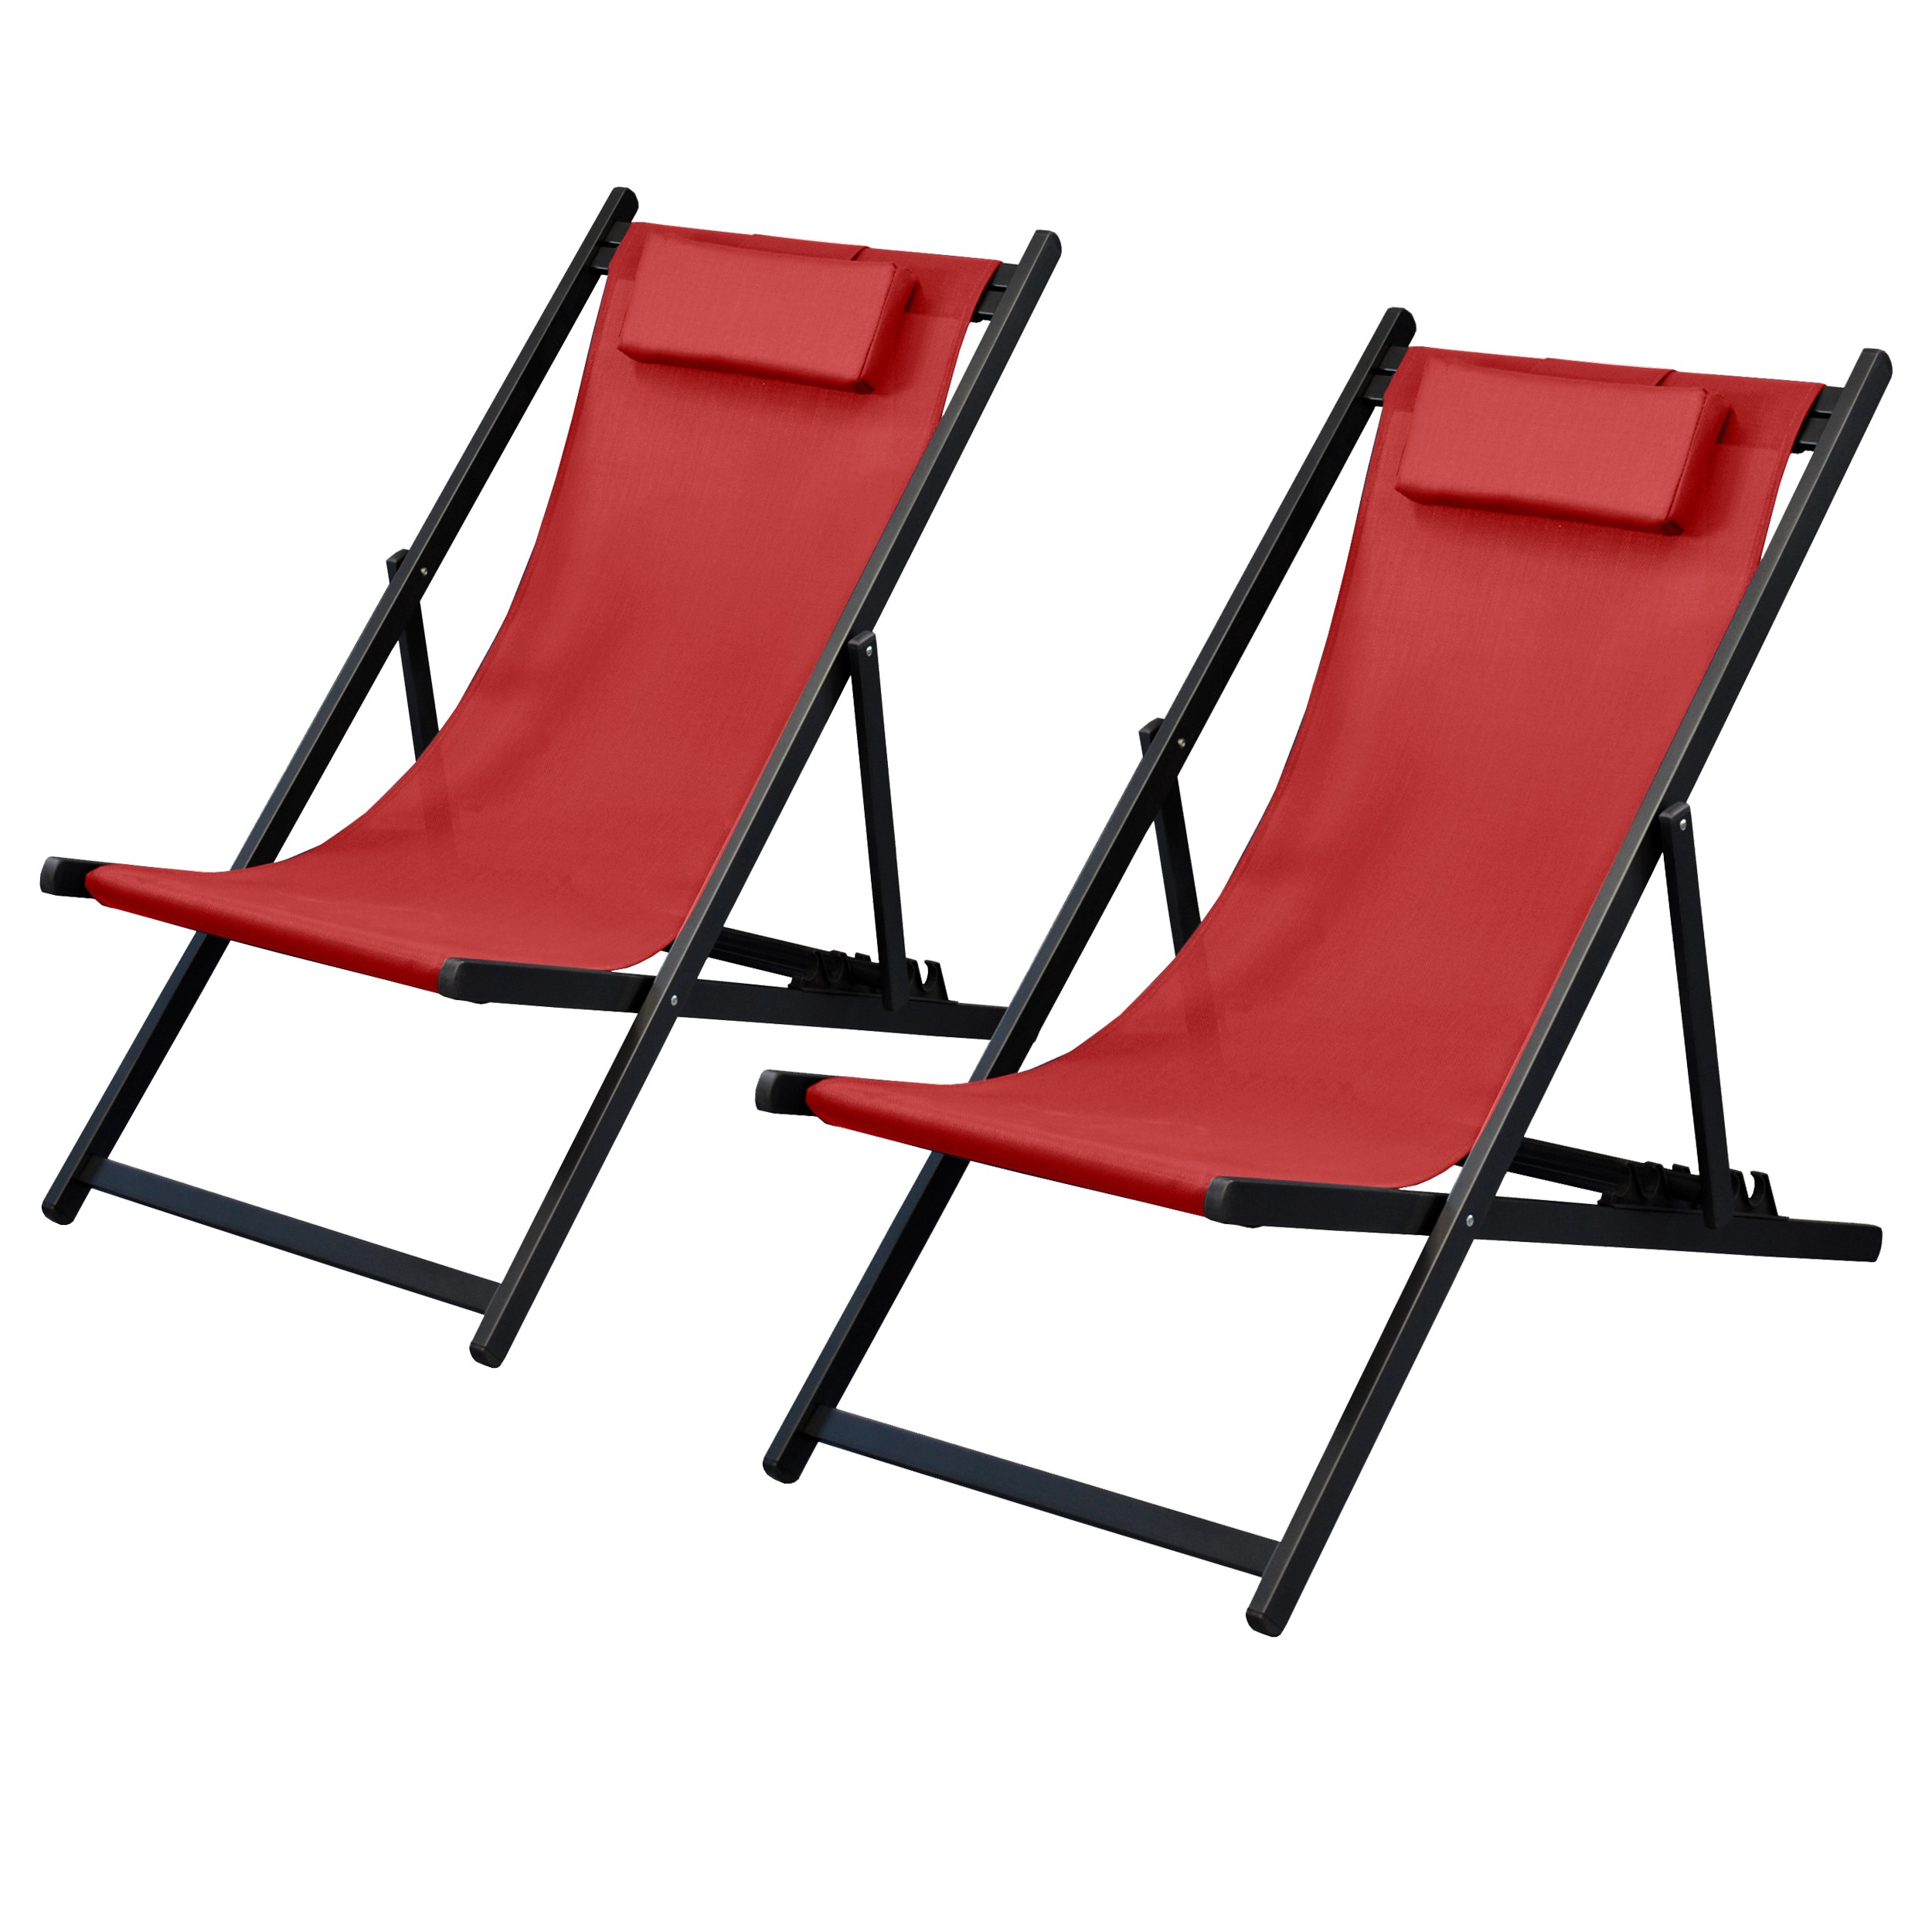 chaise longue calvi rouge cerise lot de 2 d couvrez nos chaises longues calvi rouges lot de. Black Bedroom Furniture Sets. Home Design Ideas